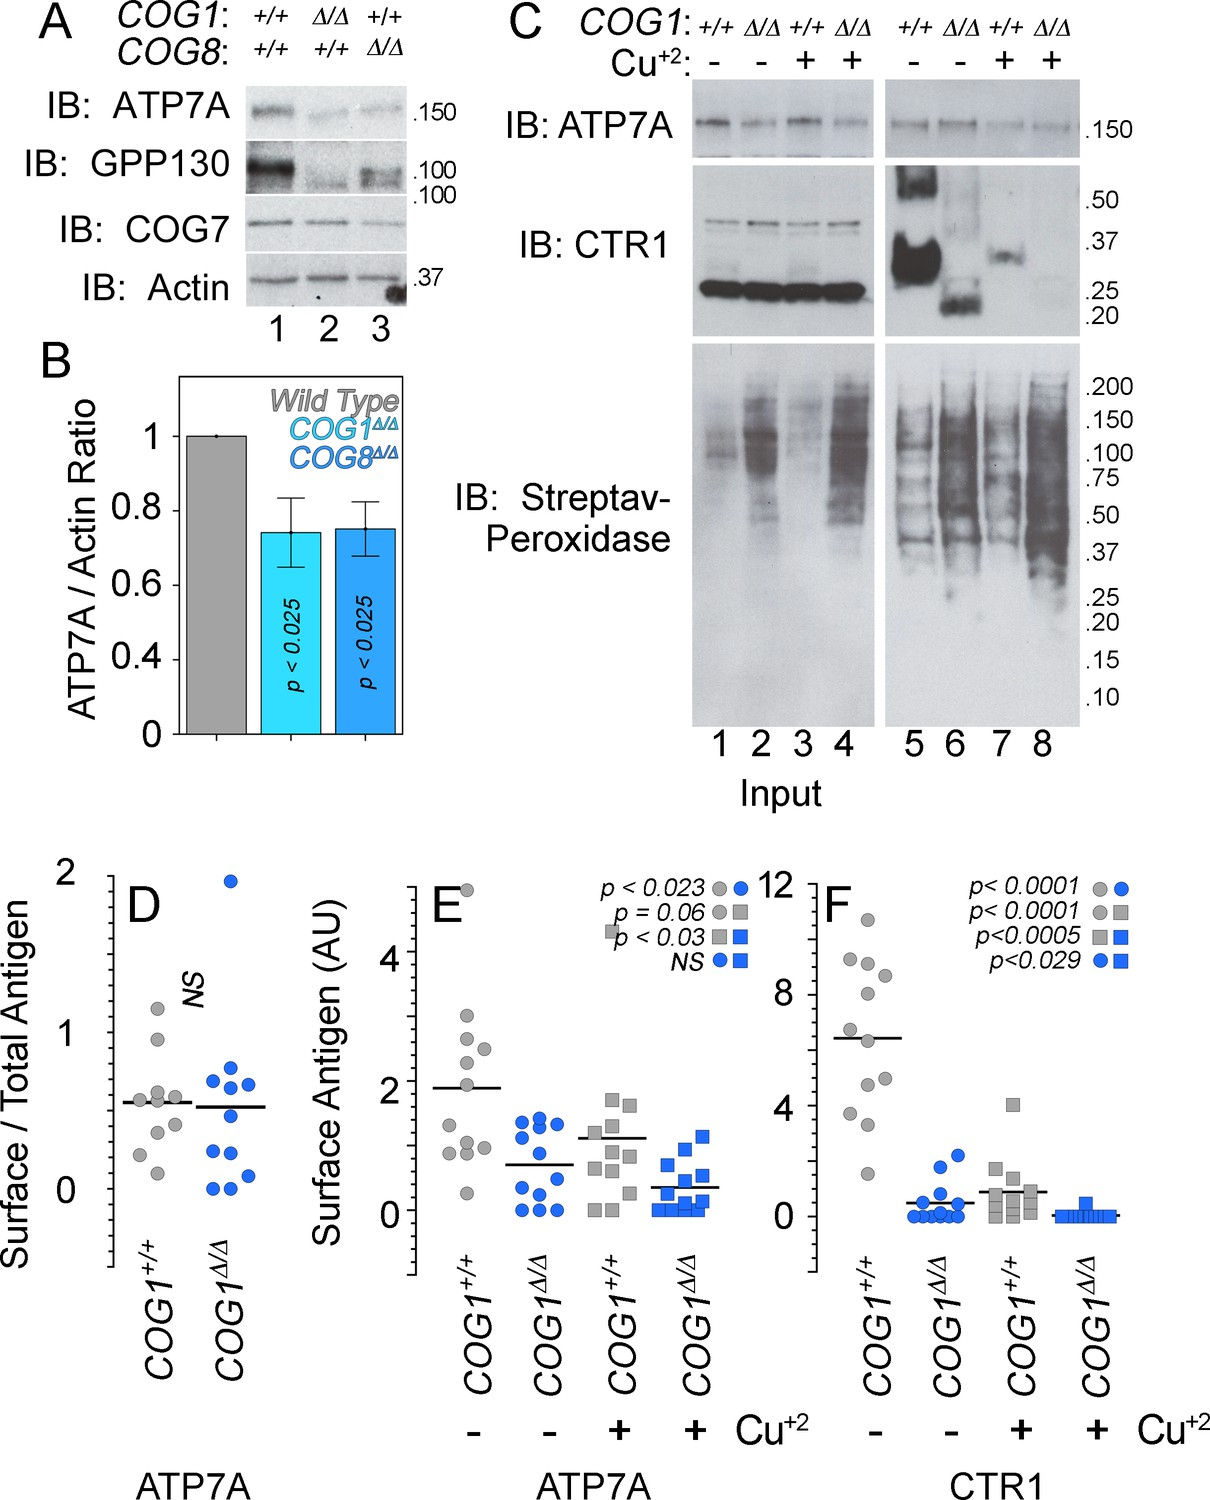 The interactome of the copper transporter ATP7A belongs to a network